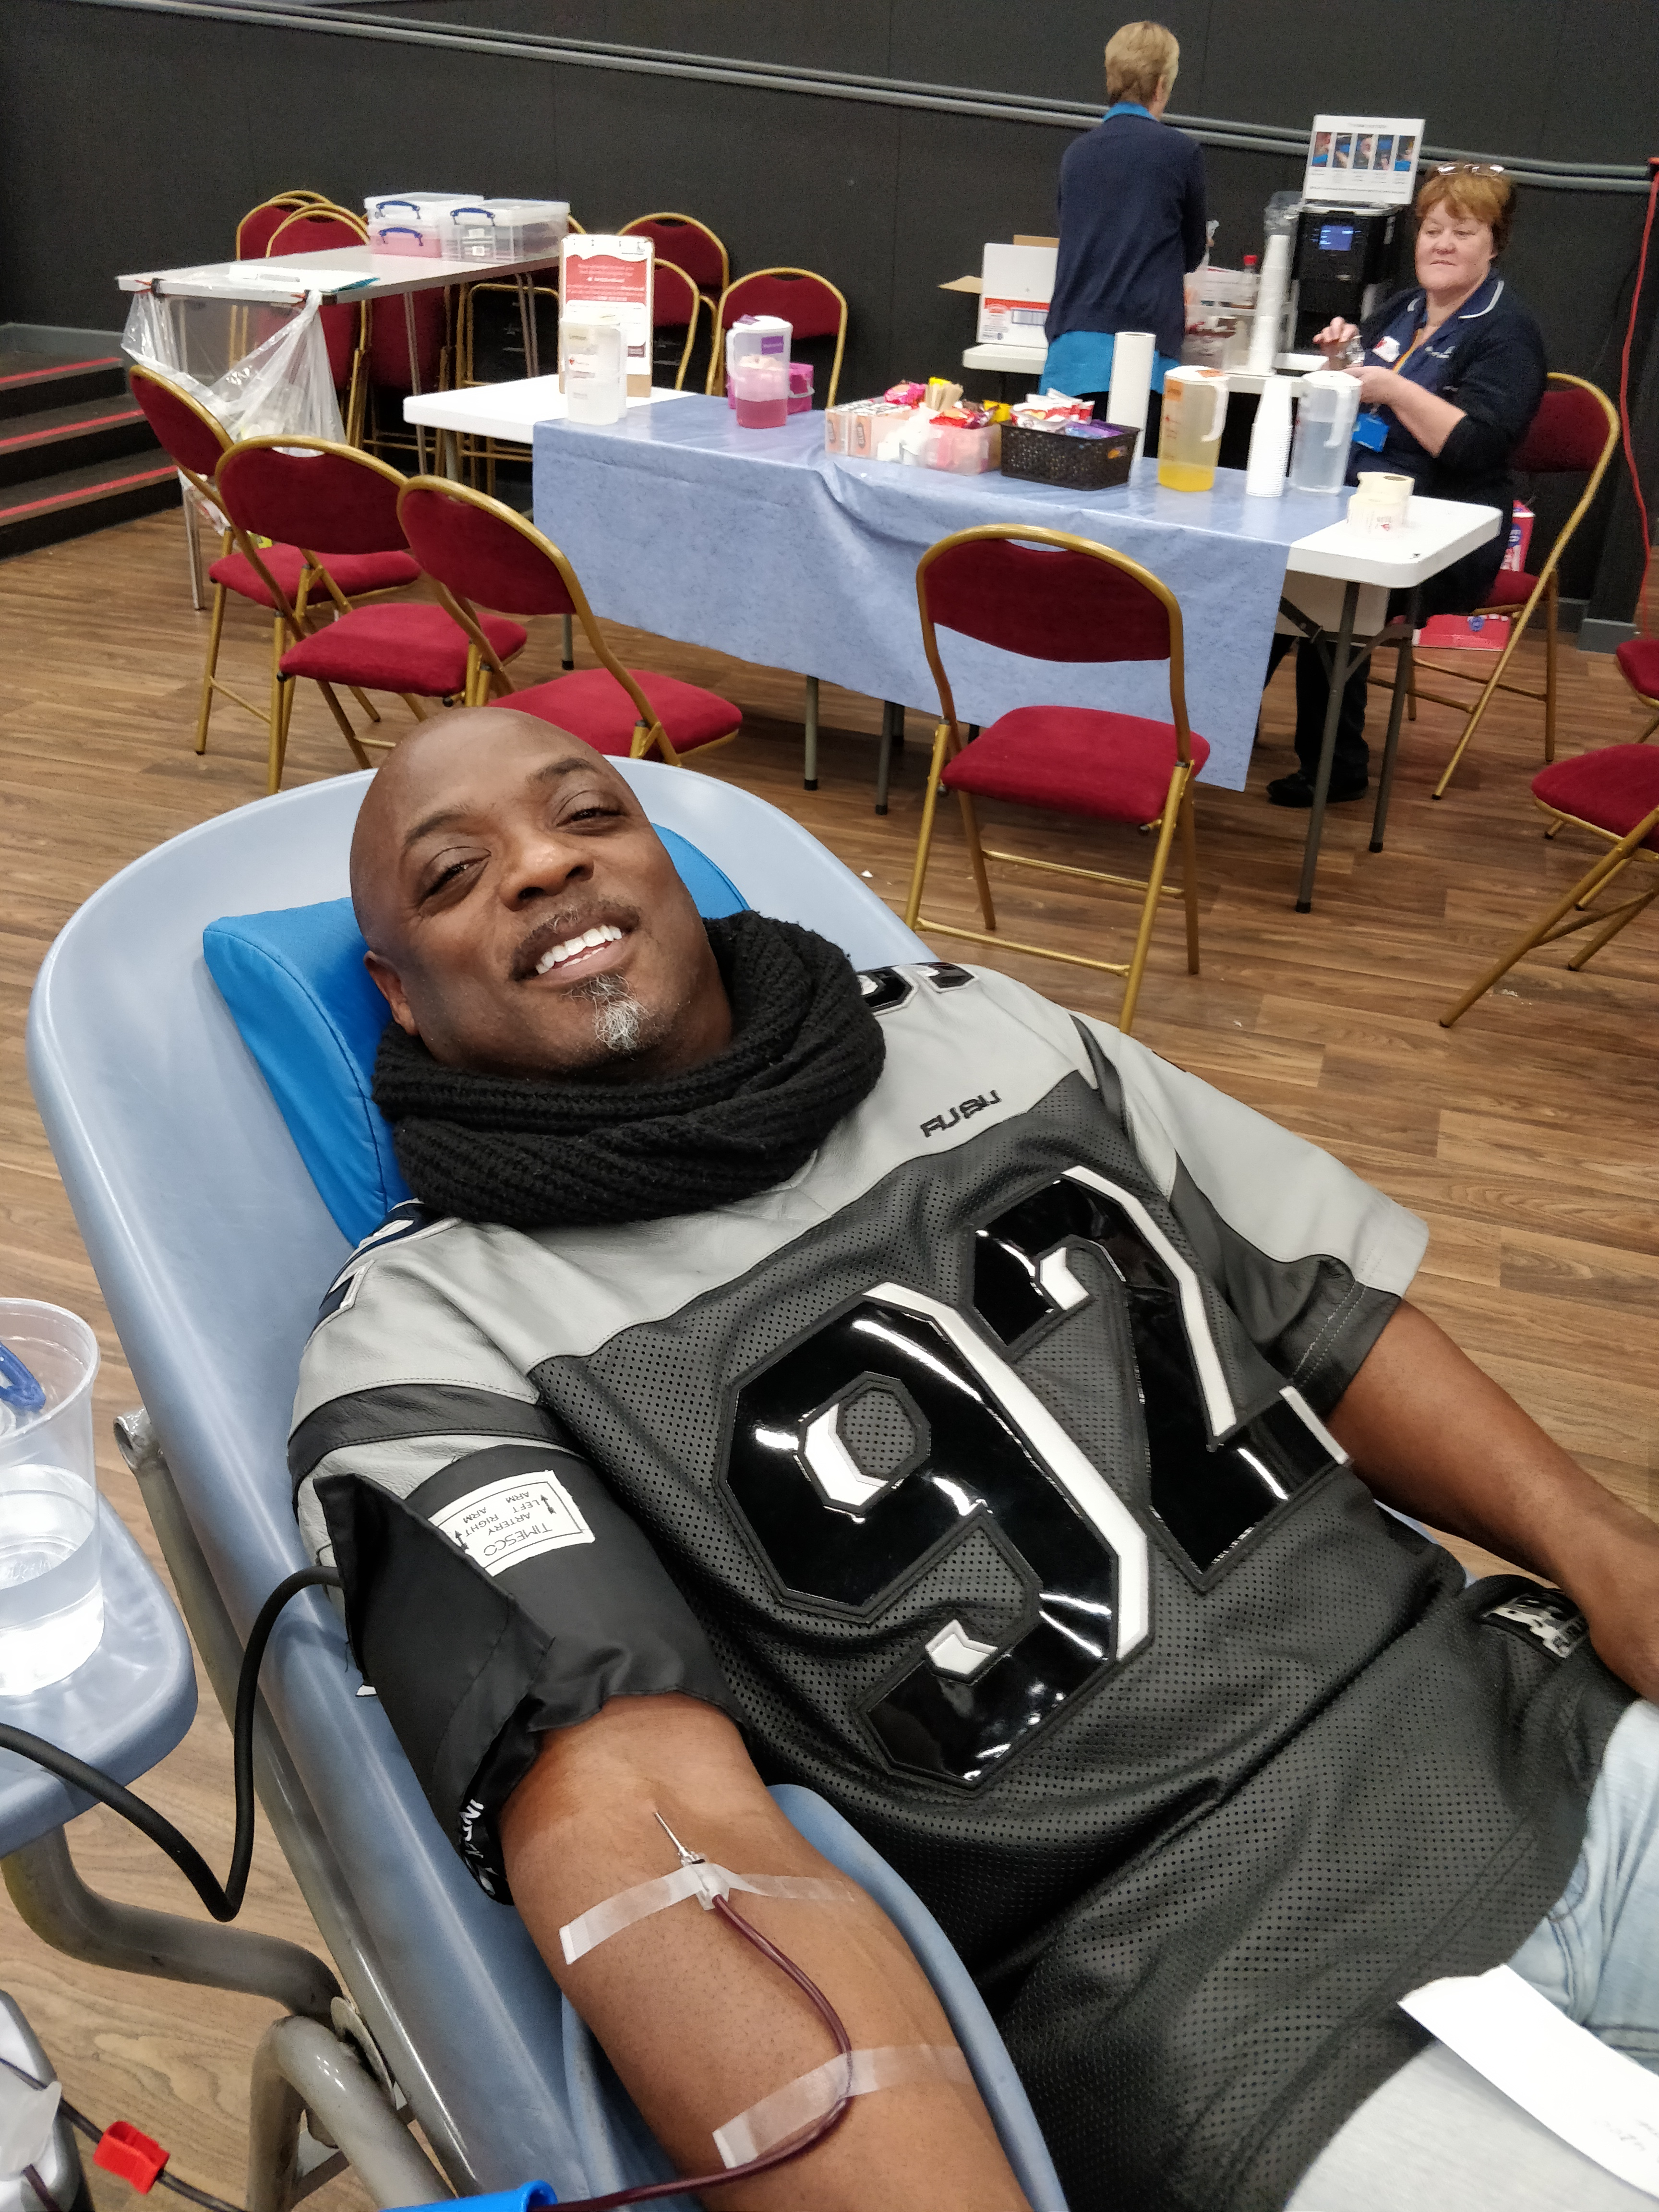 Ronald donating blood